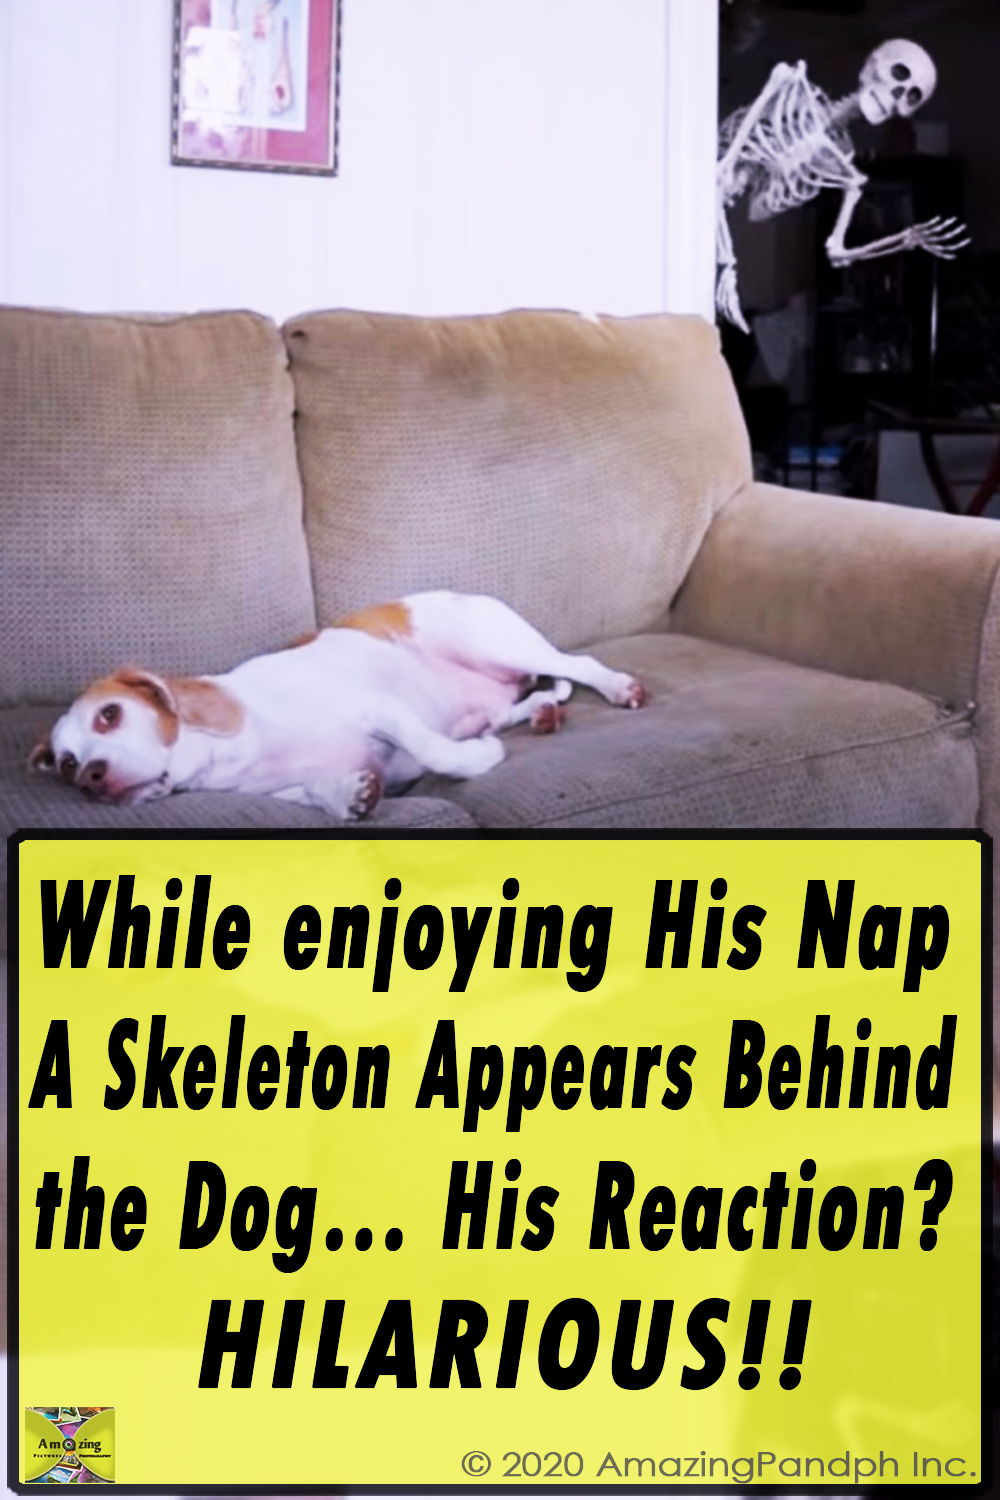 maymo, beagle, dog, dogs, funny dogs, funny dog, funny, skeleton, prank, halloween, halloween prank, dog vs skeleton, dog scared, dog terrified, cute dog,viral video,amazingpandph video,best of,coolest prank,viral post,viral stuff,most viewed,most watched,most shared